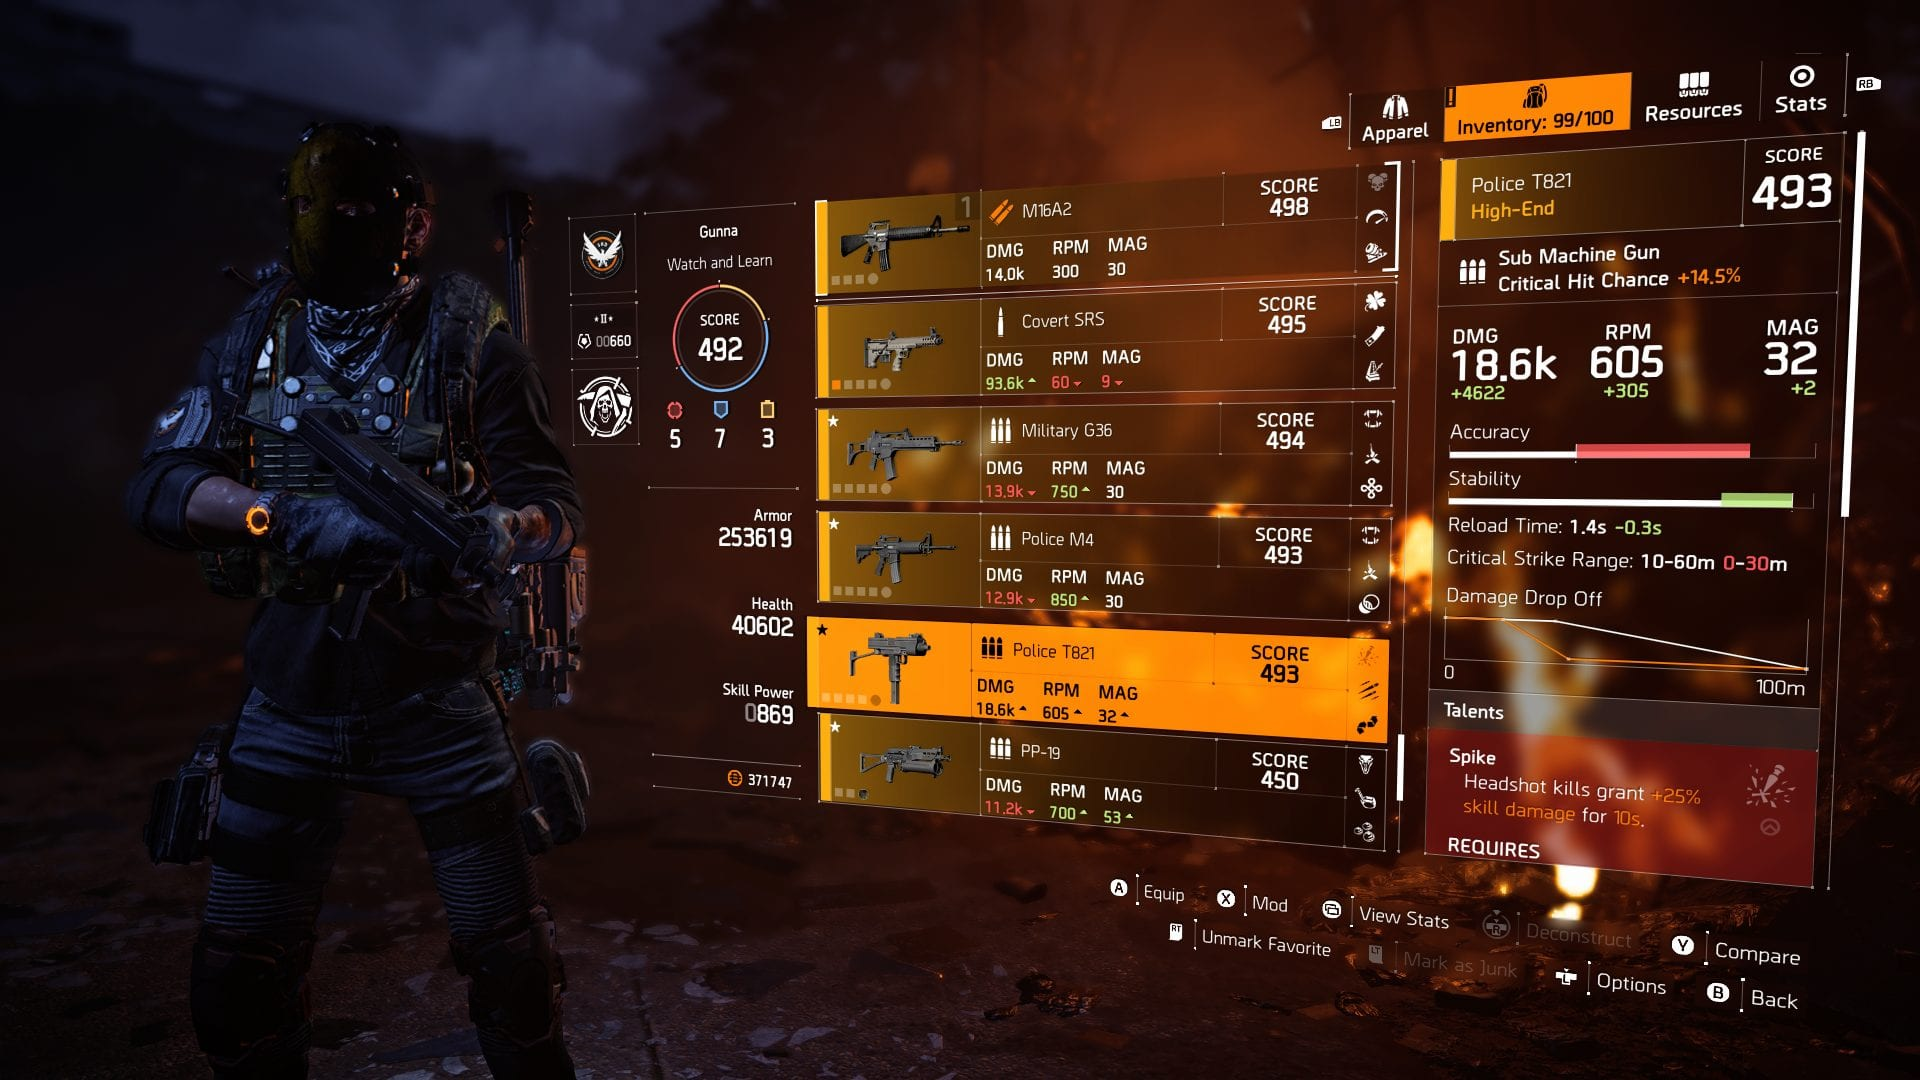 The best SMG's in The Division 2 - BuffNerfRepeat